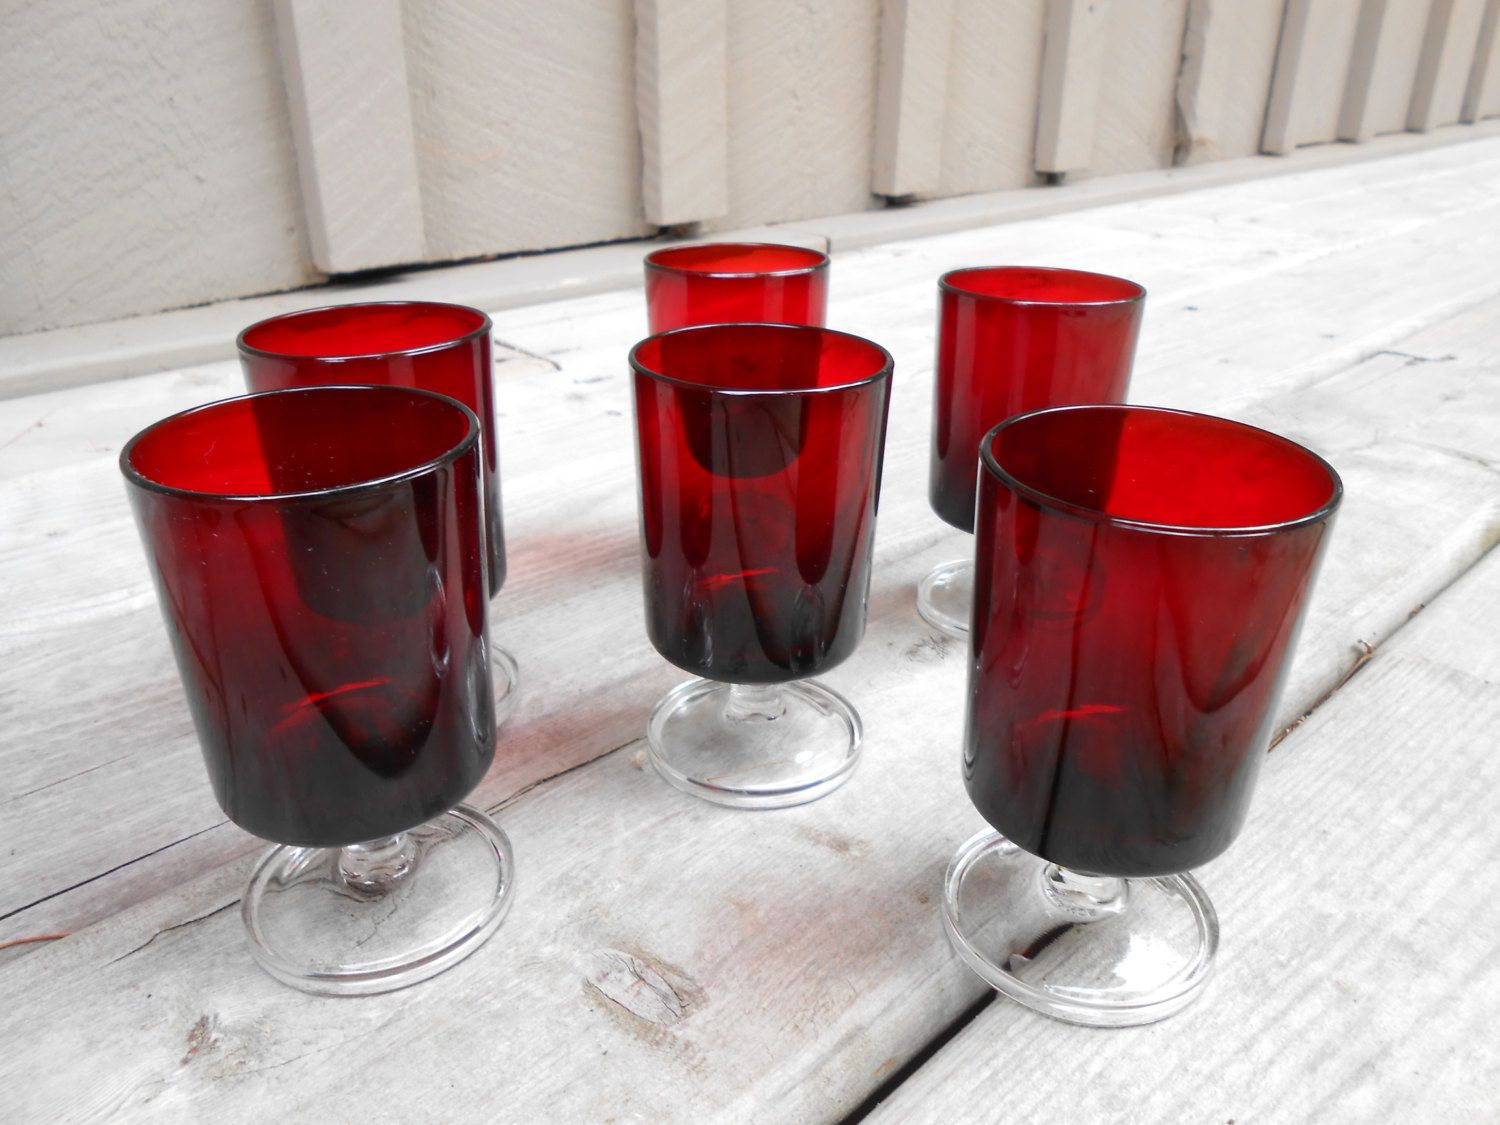 Ruby Red Luminarc Set Of Six Vintage Wine Glasses Luminarc Cavalier Arcoroc France Red Glassware Set Of 6 Ste Vintage Wine Glasses Luminarc Glassware Set